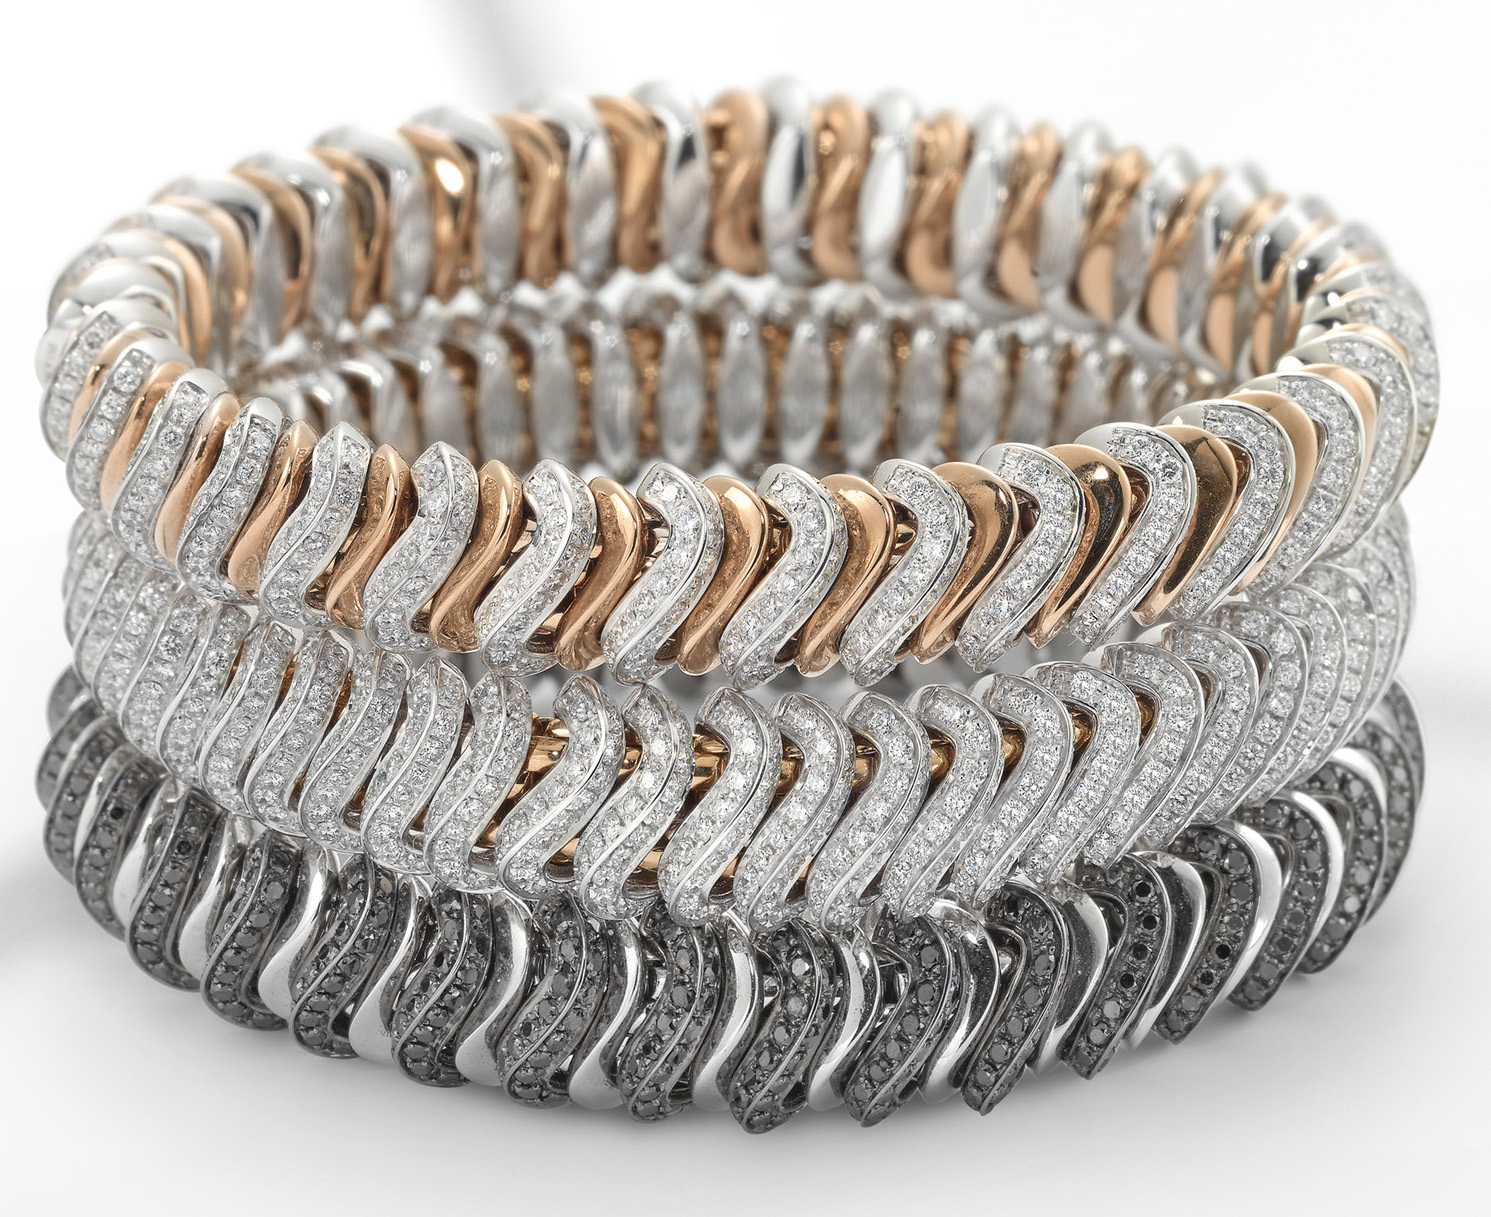 Fope Vendôme collection diamond bracelets | JCK On Your Market